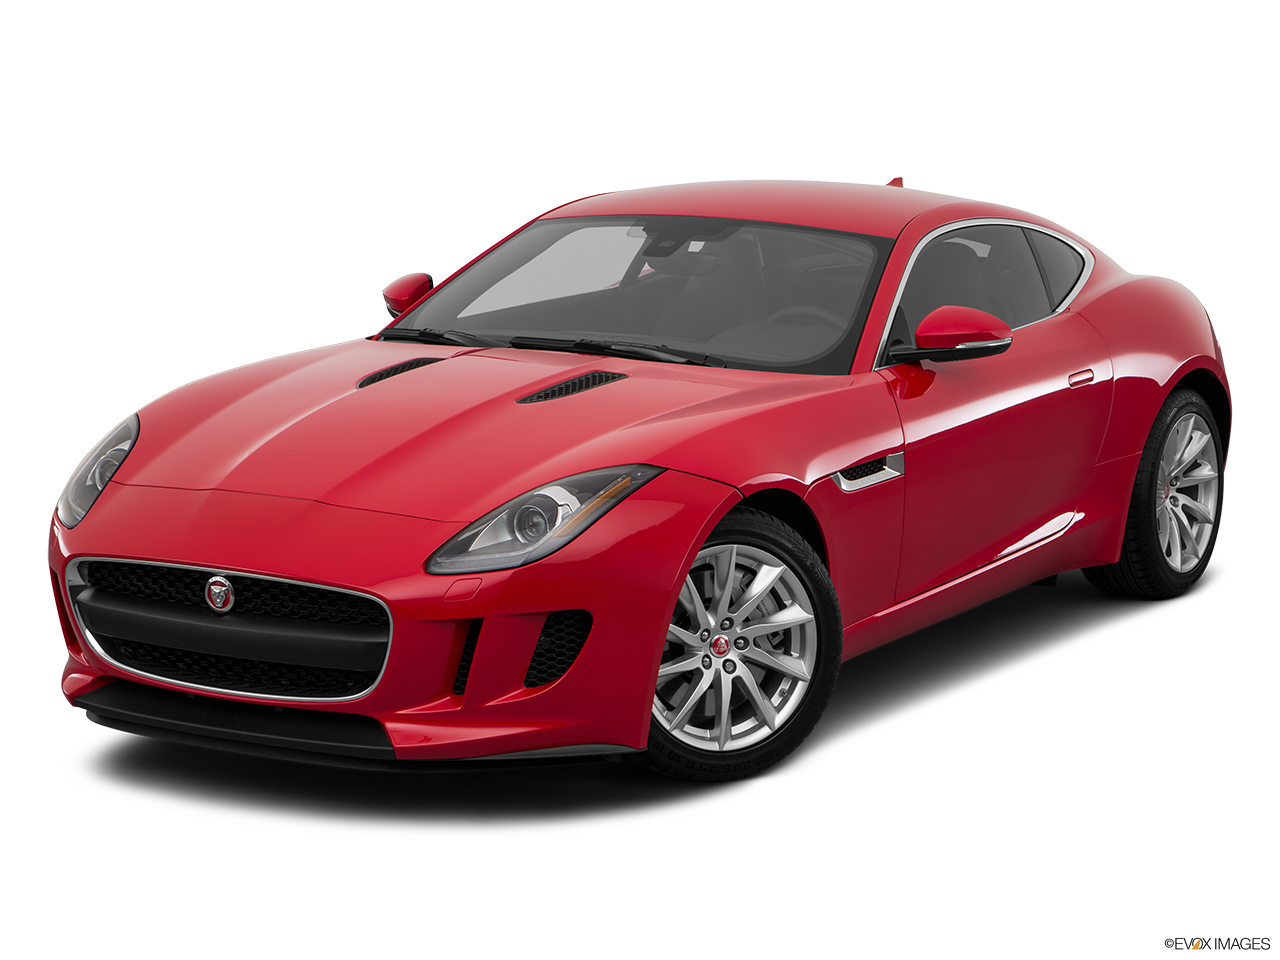 2017 jaguar f type coupe prices in qatar gulf specs reviews for doha yallamotor. Black Bedroom Furniture Sets. Home Design Ideas